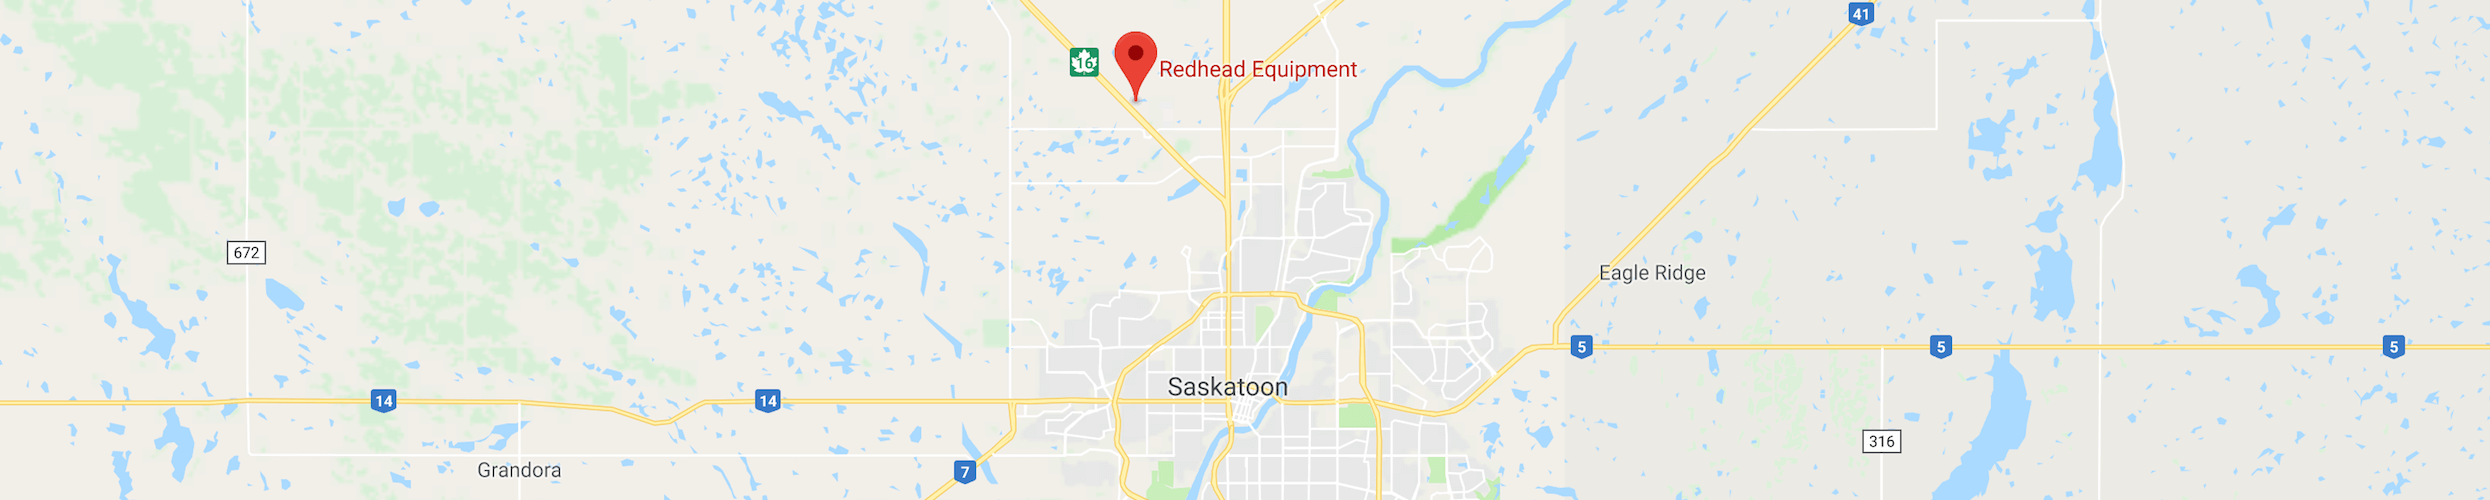 Map Location of Redhead Equipment in Saskatoon